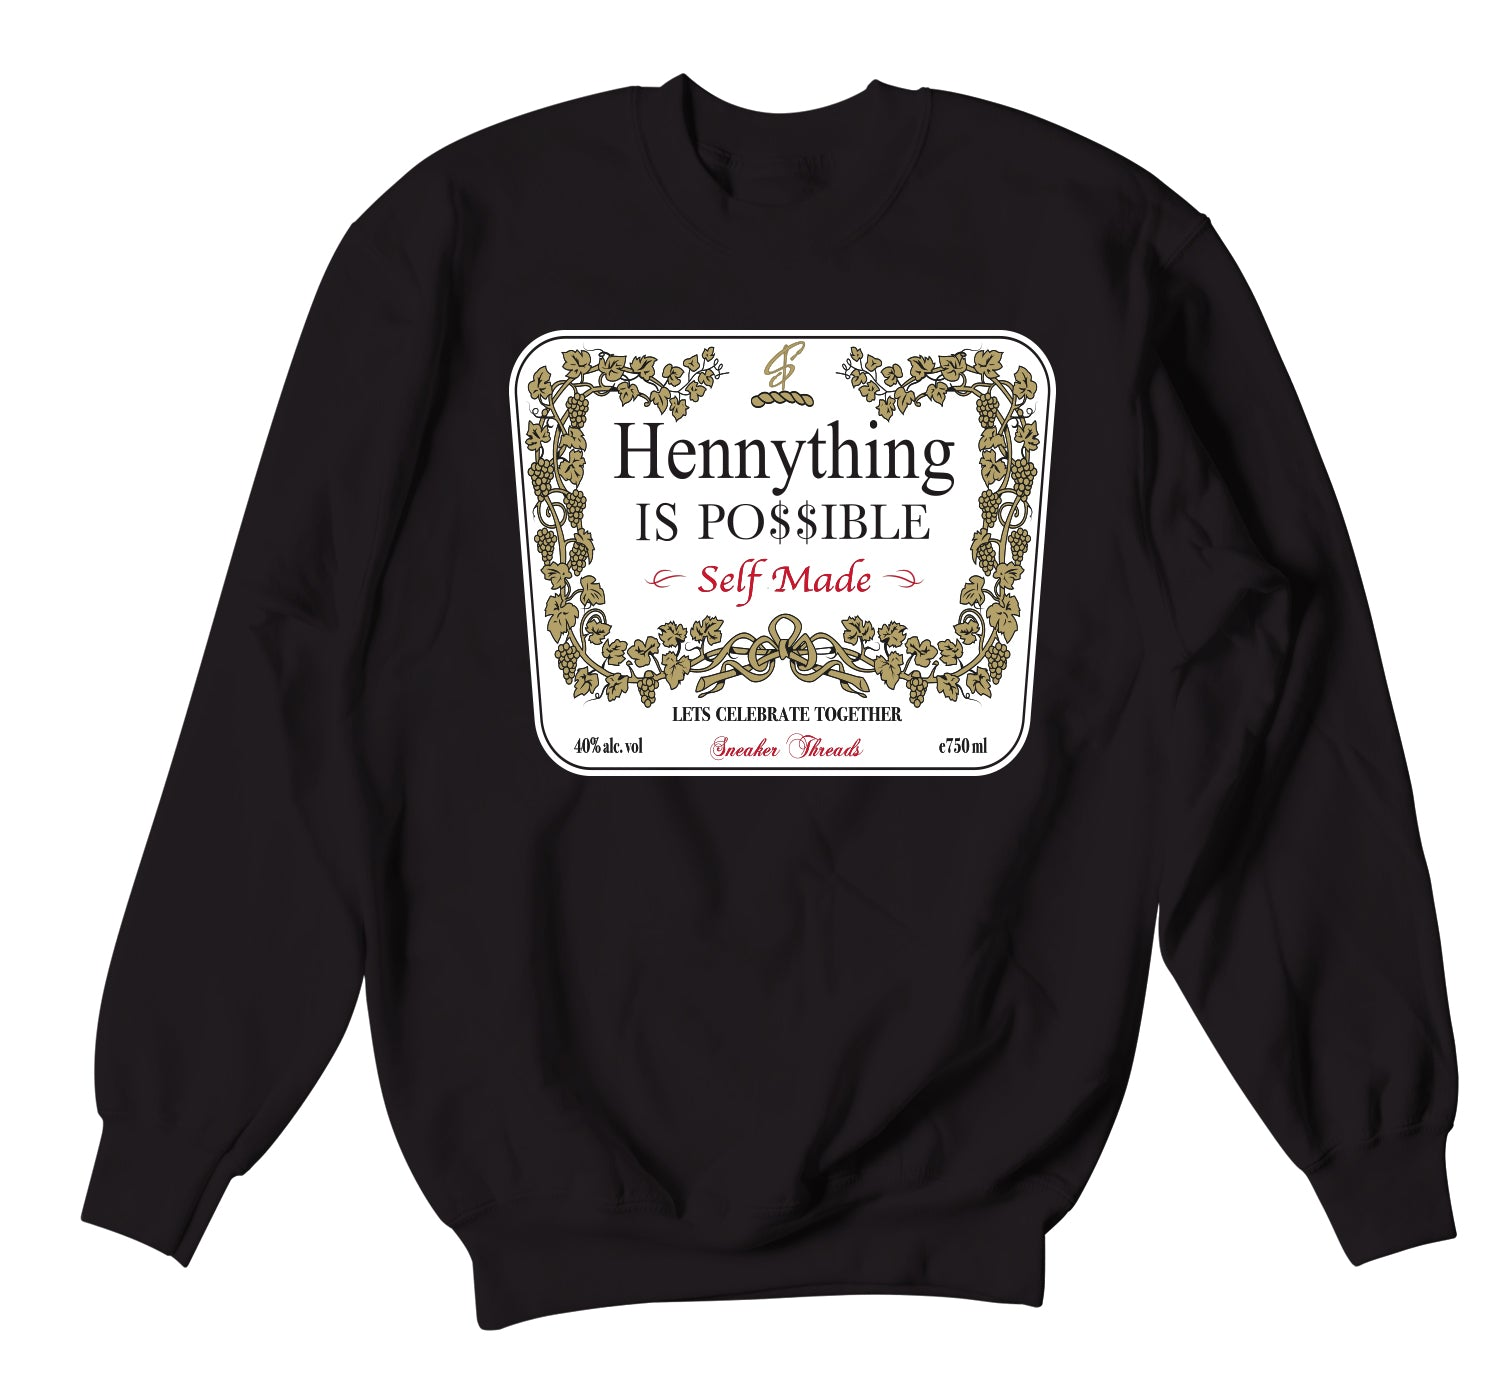 Jordan 11 Bred Sweater - Hennything - Black